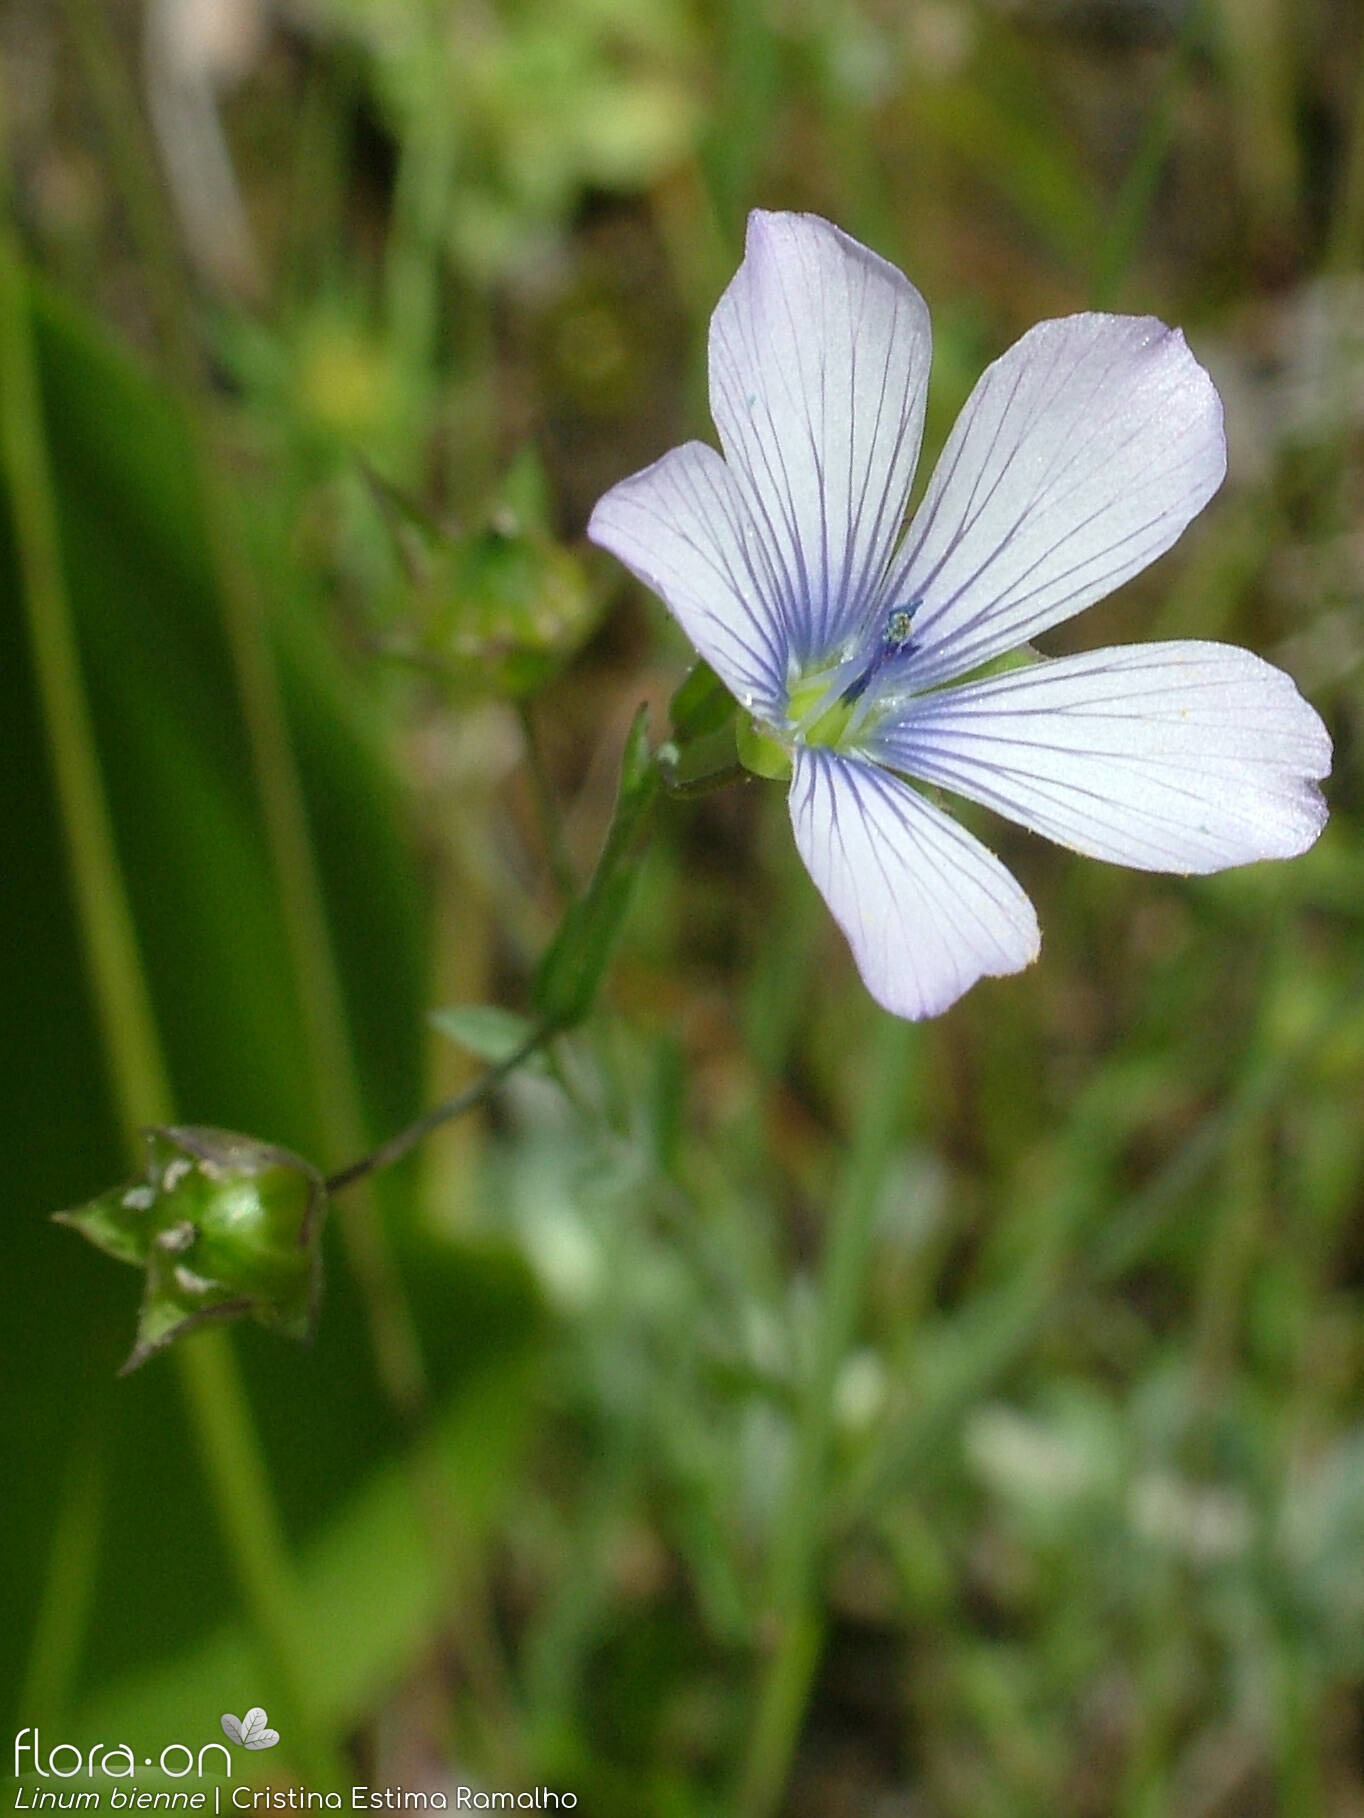 Linum bienne - Flor (close-up) | Cristina Estima Ramalho; CC BY-NC 4.0